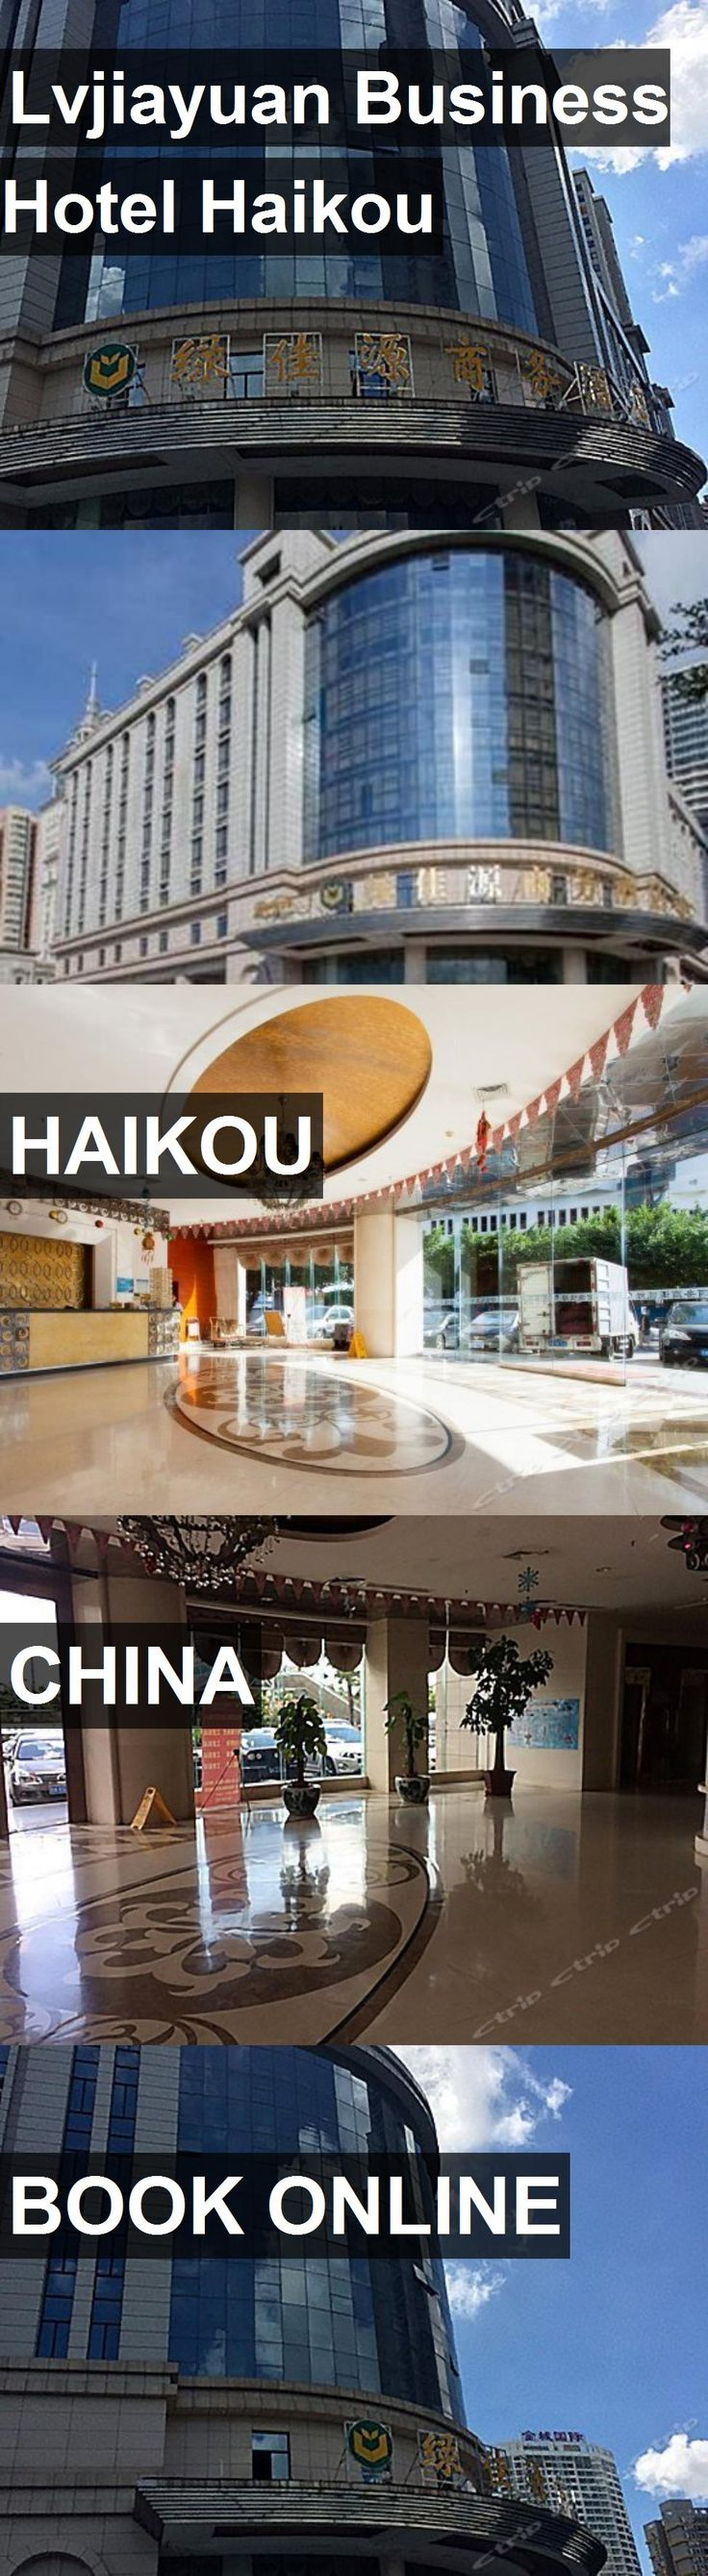 Hotel Lvjiayuan Business Hotel Haikou in Haikou, China. For more information, photos, reviews and best prices please follow the link. #China #Haikou #LvjiayuanBusinessHotelHaikou #hotel #travel #vacation